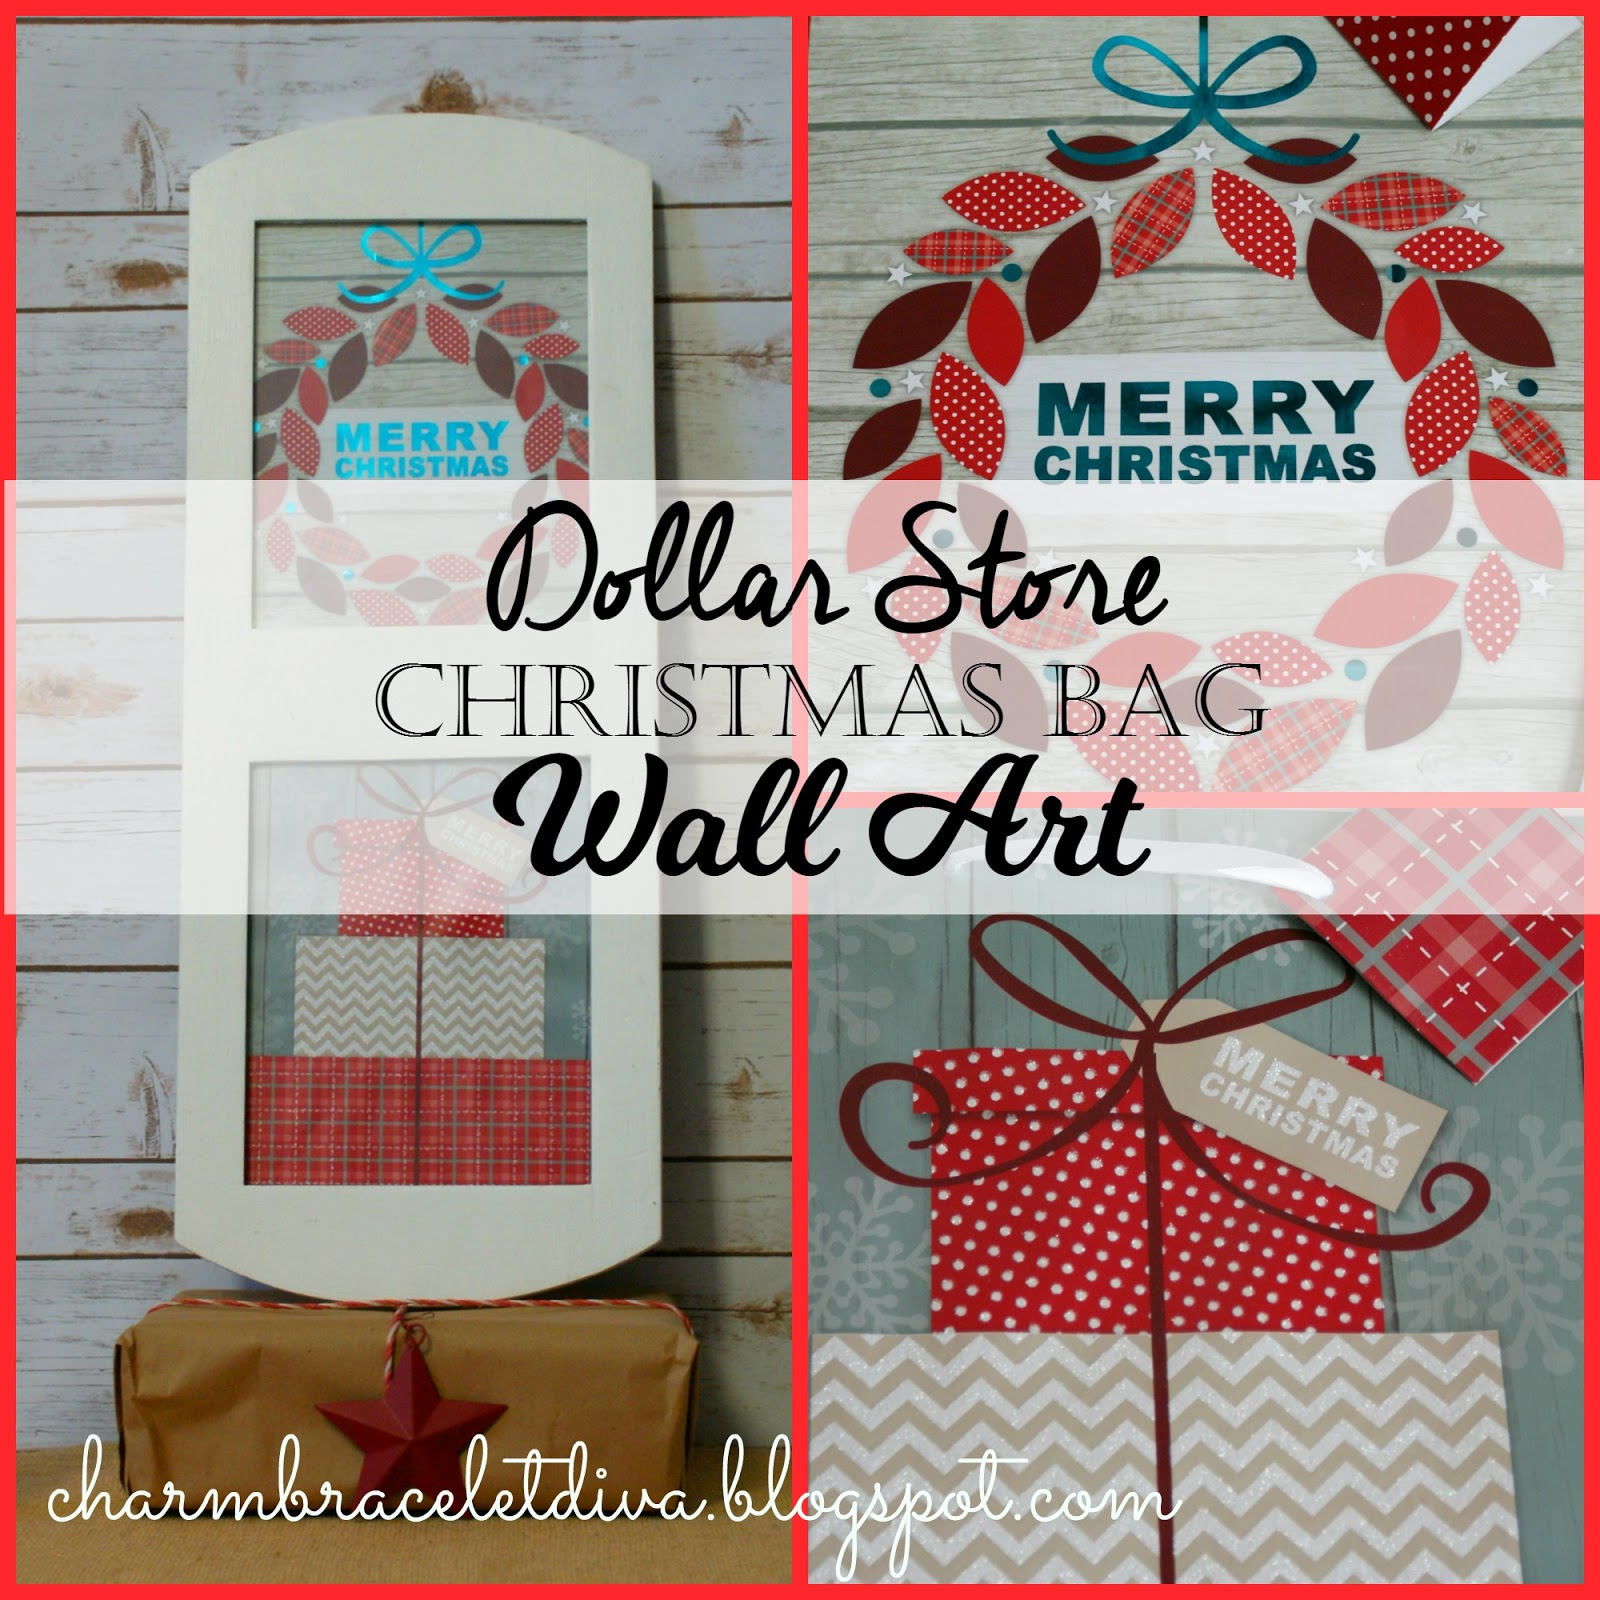 Holiday Decor Gift Ideas Pottery Barn Edition All My: Our Hopeful Home: Christmas Gift Bag Wall Art